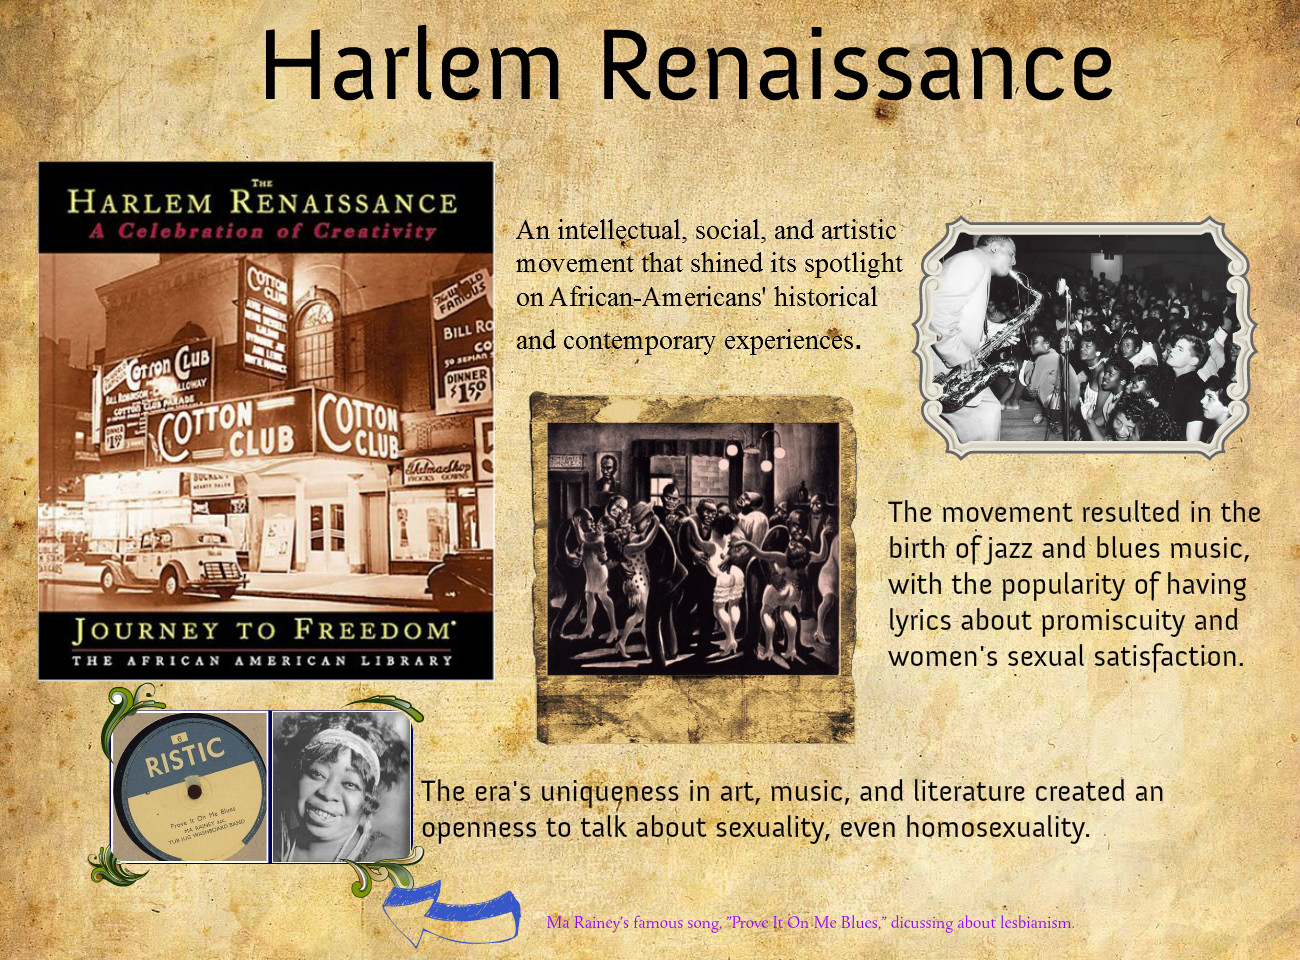 an overview of the harlem renaissance as an african american cultural movement of the 1920s Many scholars think of the harlem renaissance as the moment african american literature first came into its own: a rebirth of literature as an african american space which was a pretty major deal, especially when you consider that the 1920s weren't so long after slavery was abolished.